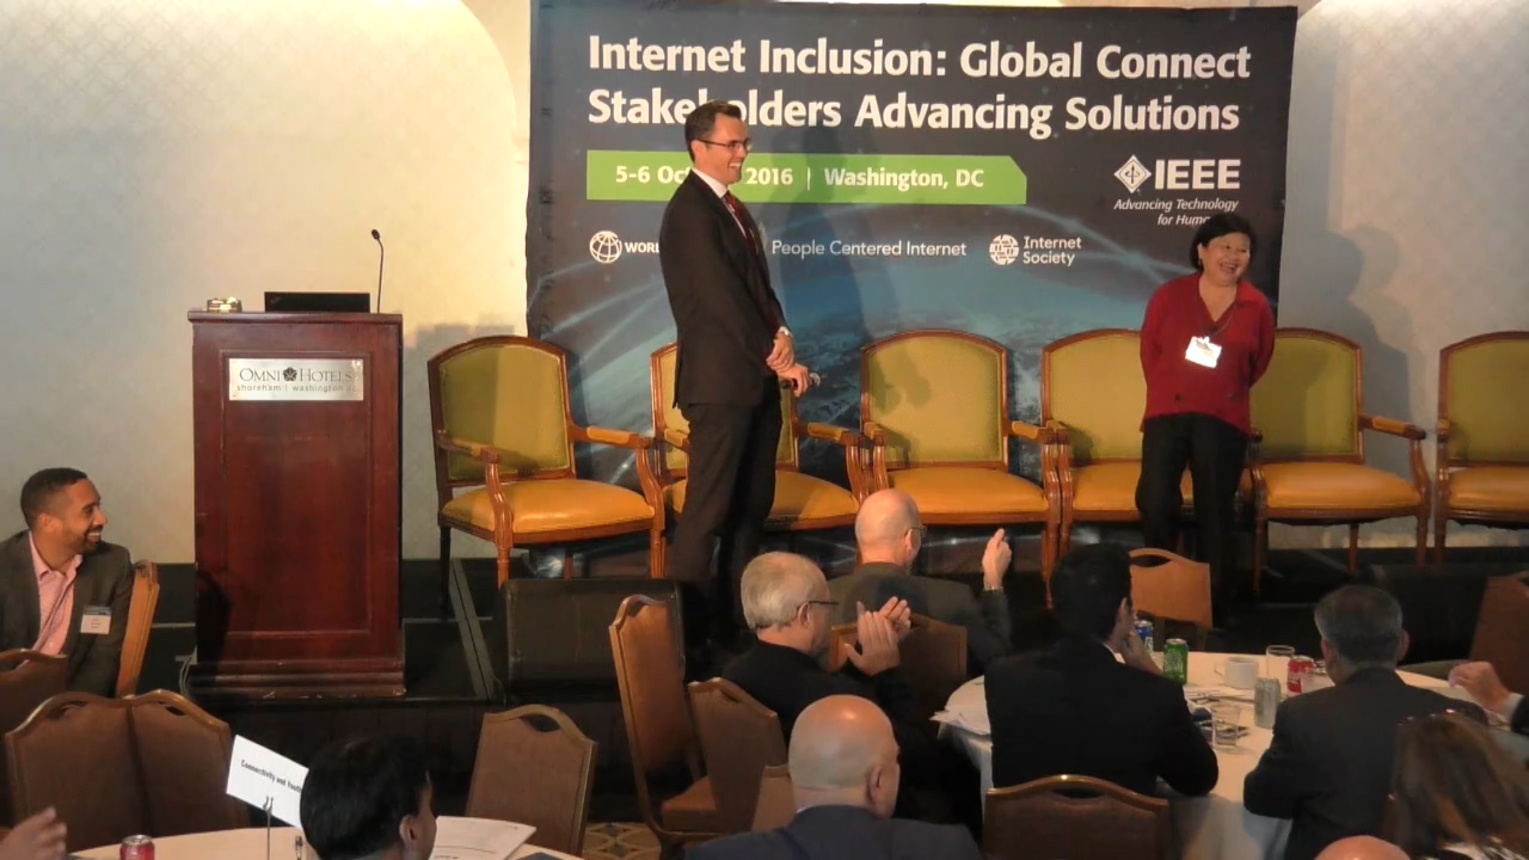 Setting the Conditions for 2020 - Internet Inclusion: Global Connect Stakeholders Advancing Solutions, Washington DC, 2016